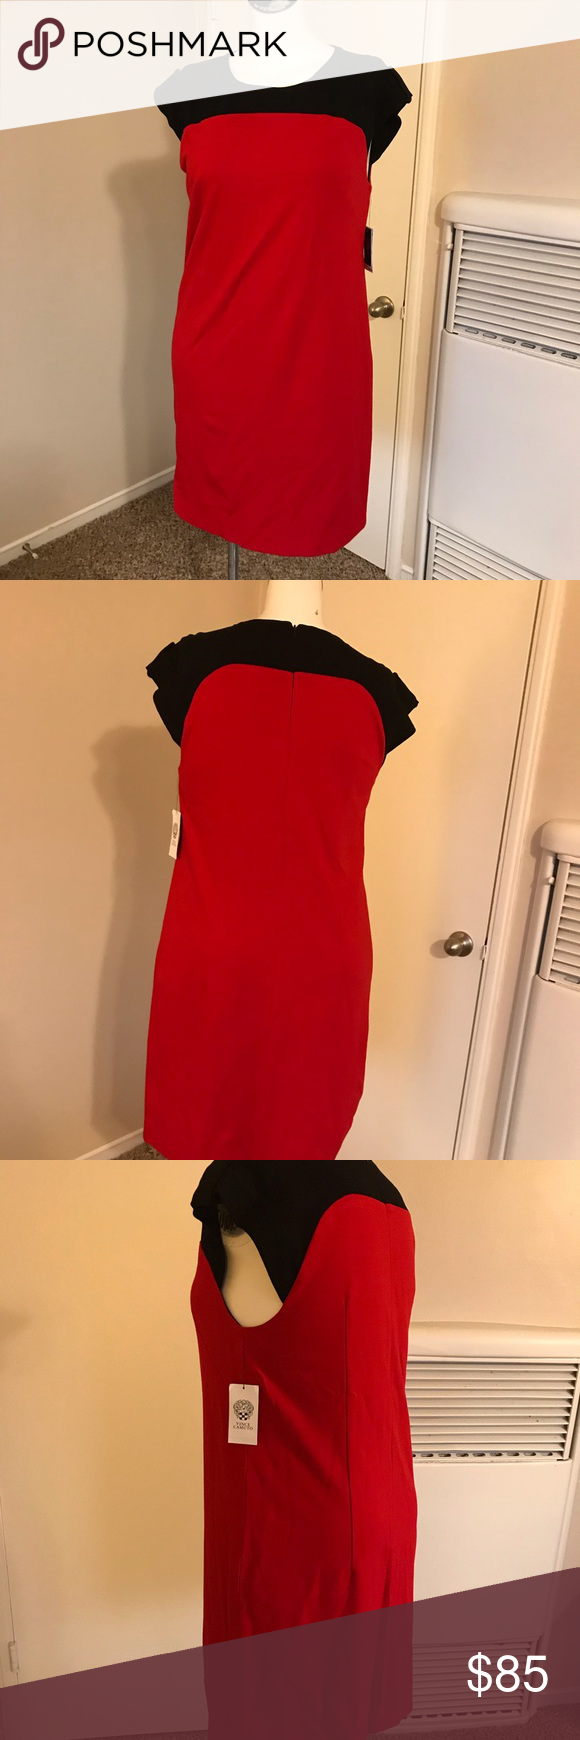 Vince Camuto Touch Of Luxe Dress Red Dress With Black Accents At The Top Invisible Zipper In Back Approximat Clothes Design Vince Camuto Dress Fashion Design [ 1740 x 580 Pixel ]